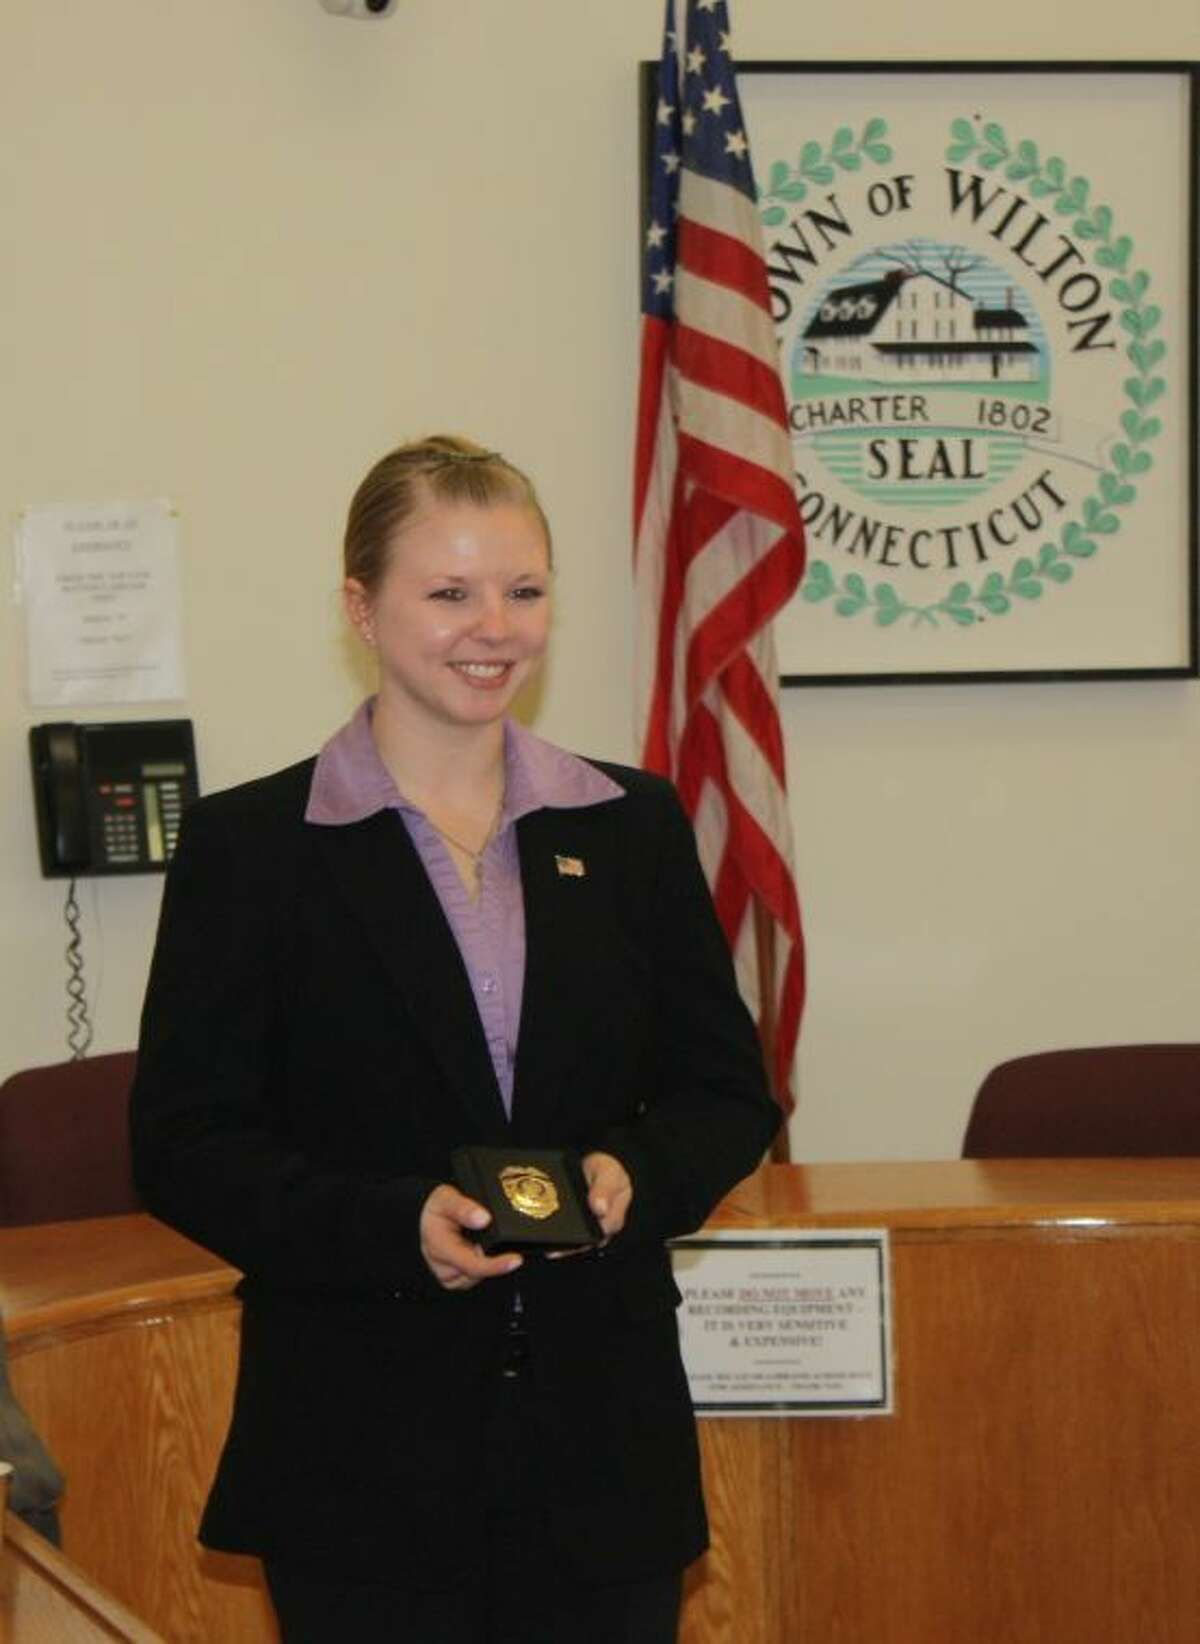 Officer Elise Holland is sworn in as the newest member of the Wilton Police Department.